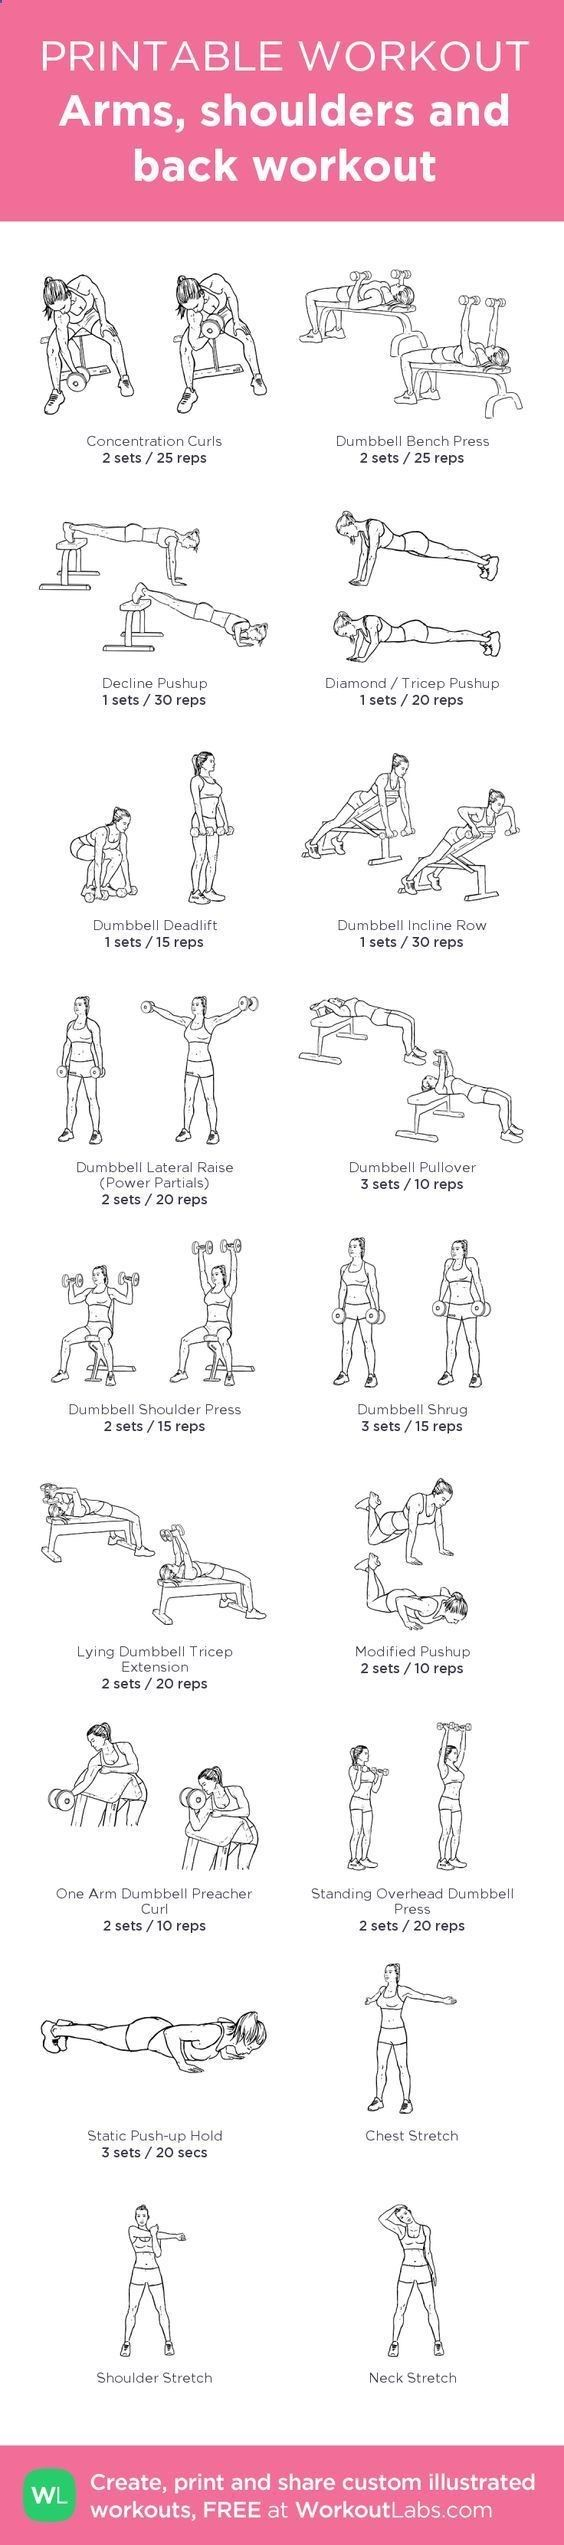 Belly Fat Workout - According to BodyBuilding.com, the back can be a problem area for a lot of women. Mostly because we get so focused on our front, we forget how important it is to have a defined back! Your back is also a key component to having good posture for modeling during swimwear and evening gown. Next time you're at the gym, try out these 14 easy moves to help tone and define your back and upper body. Do This One Unusual 10-Minute Trick Before Work To Melt Away 15+ Pounds of B...